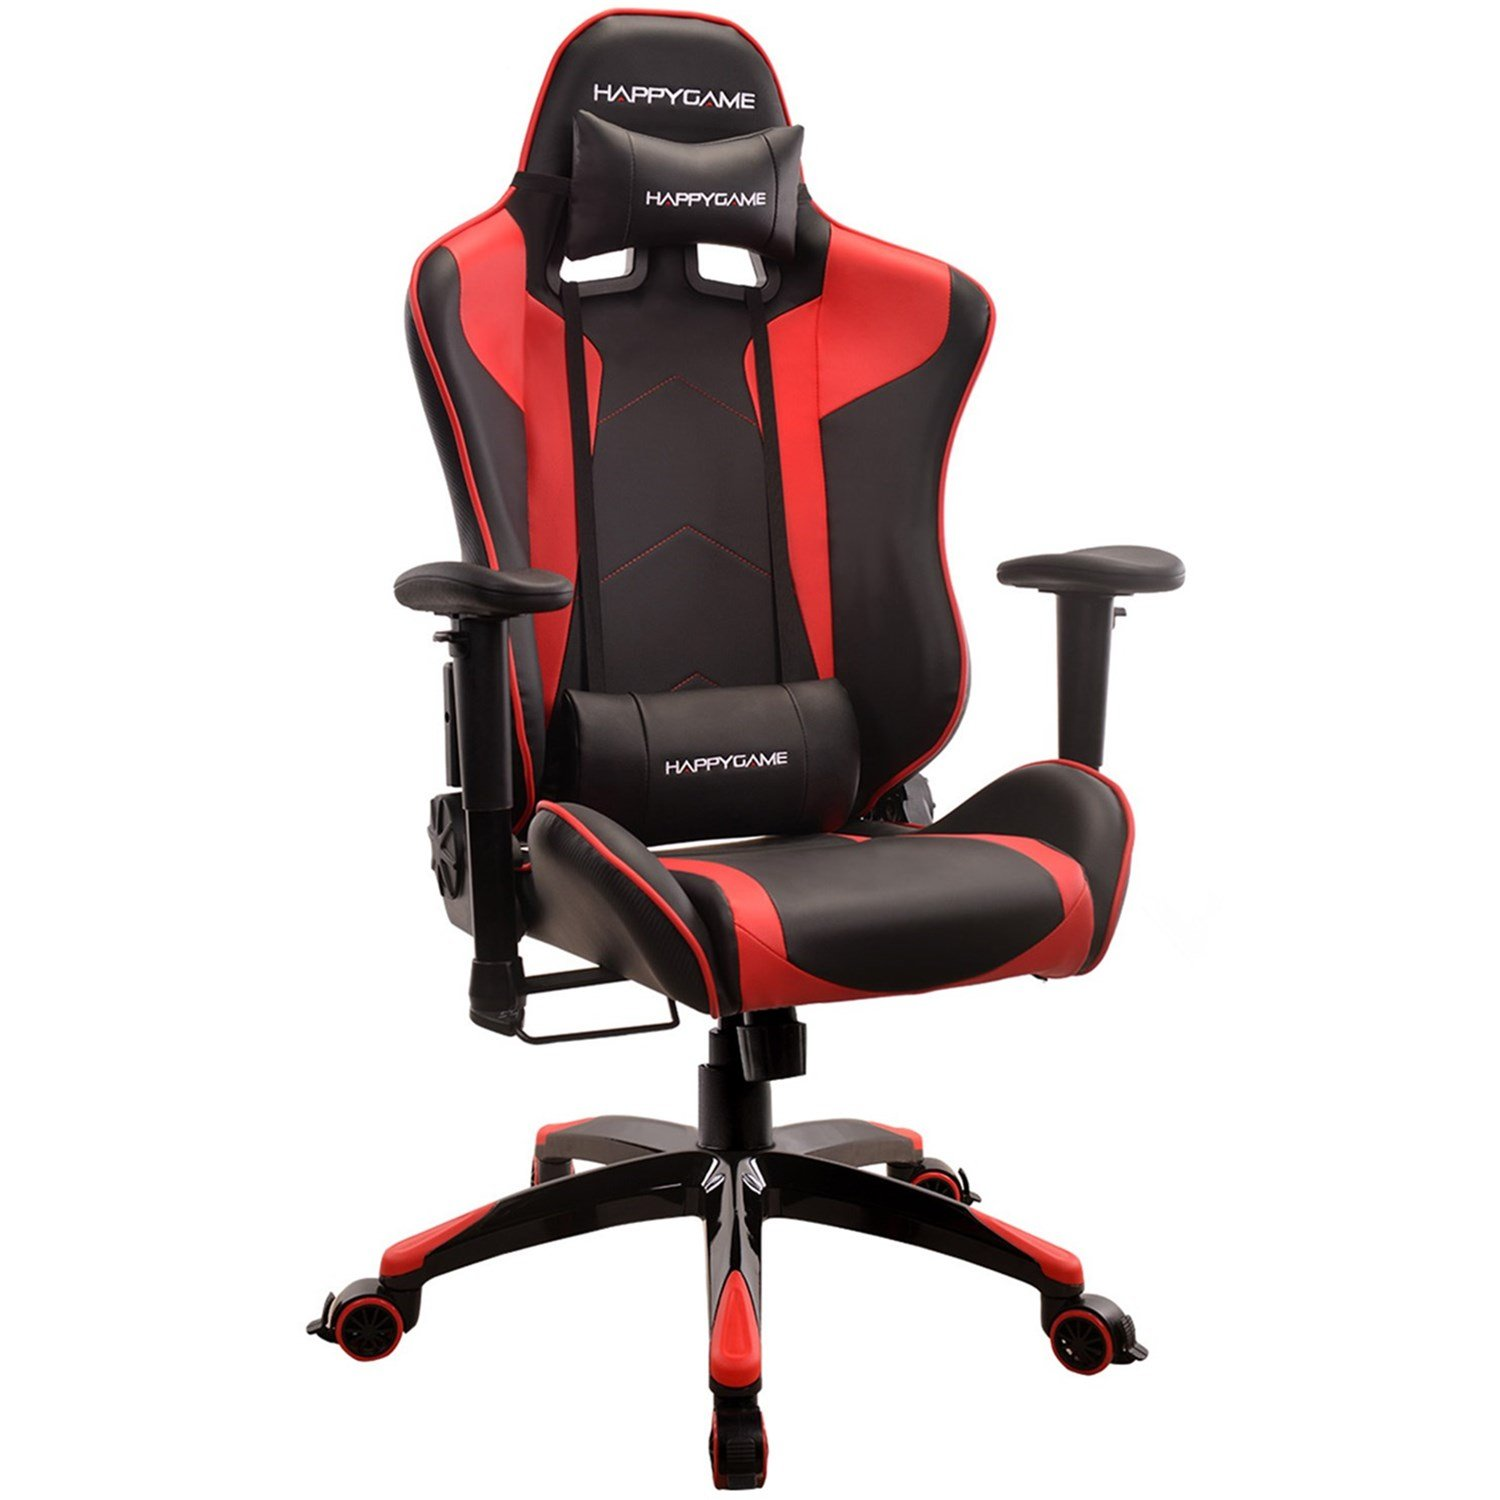 HAPPYGAME Racing Gaming Chair Oversized High Back Ergonomic Swivel Computer Chairs Executive Office Chair with Headrest and Lumbar Support, Black AS-02-Black